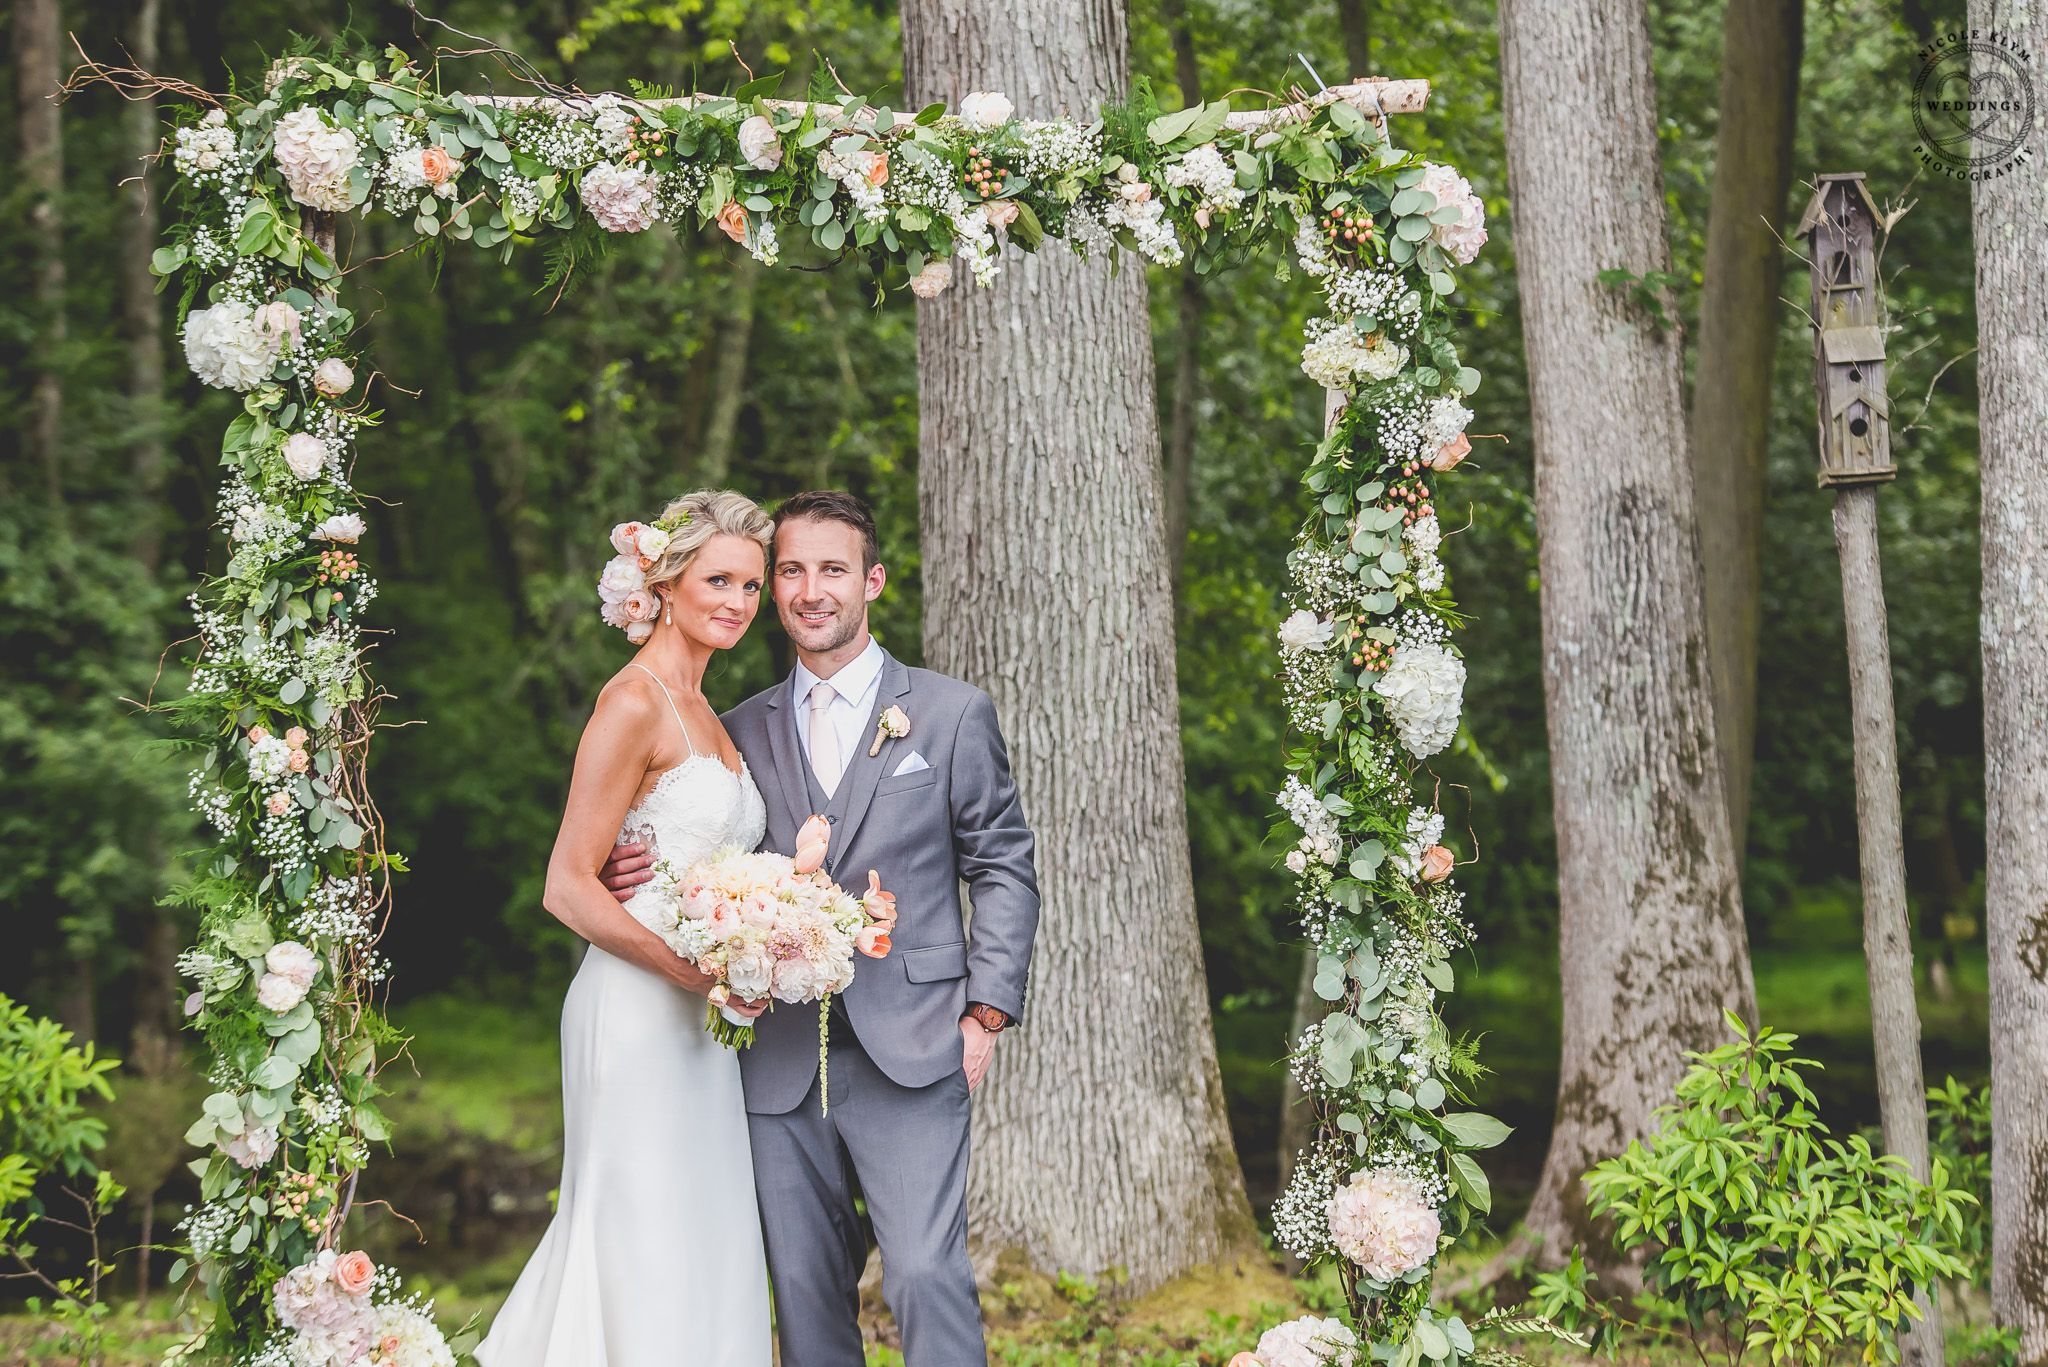 Rustic Farm Weddings at DiMeo Farms with the most ...